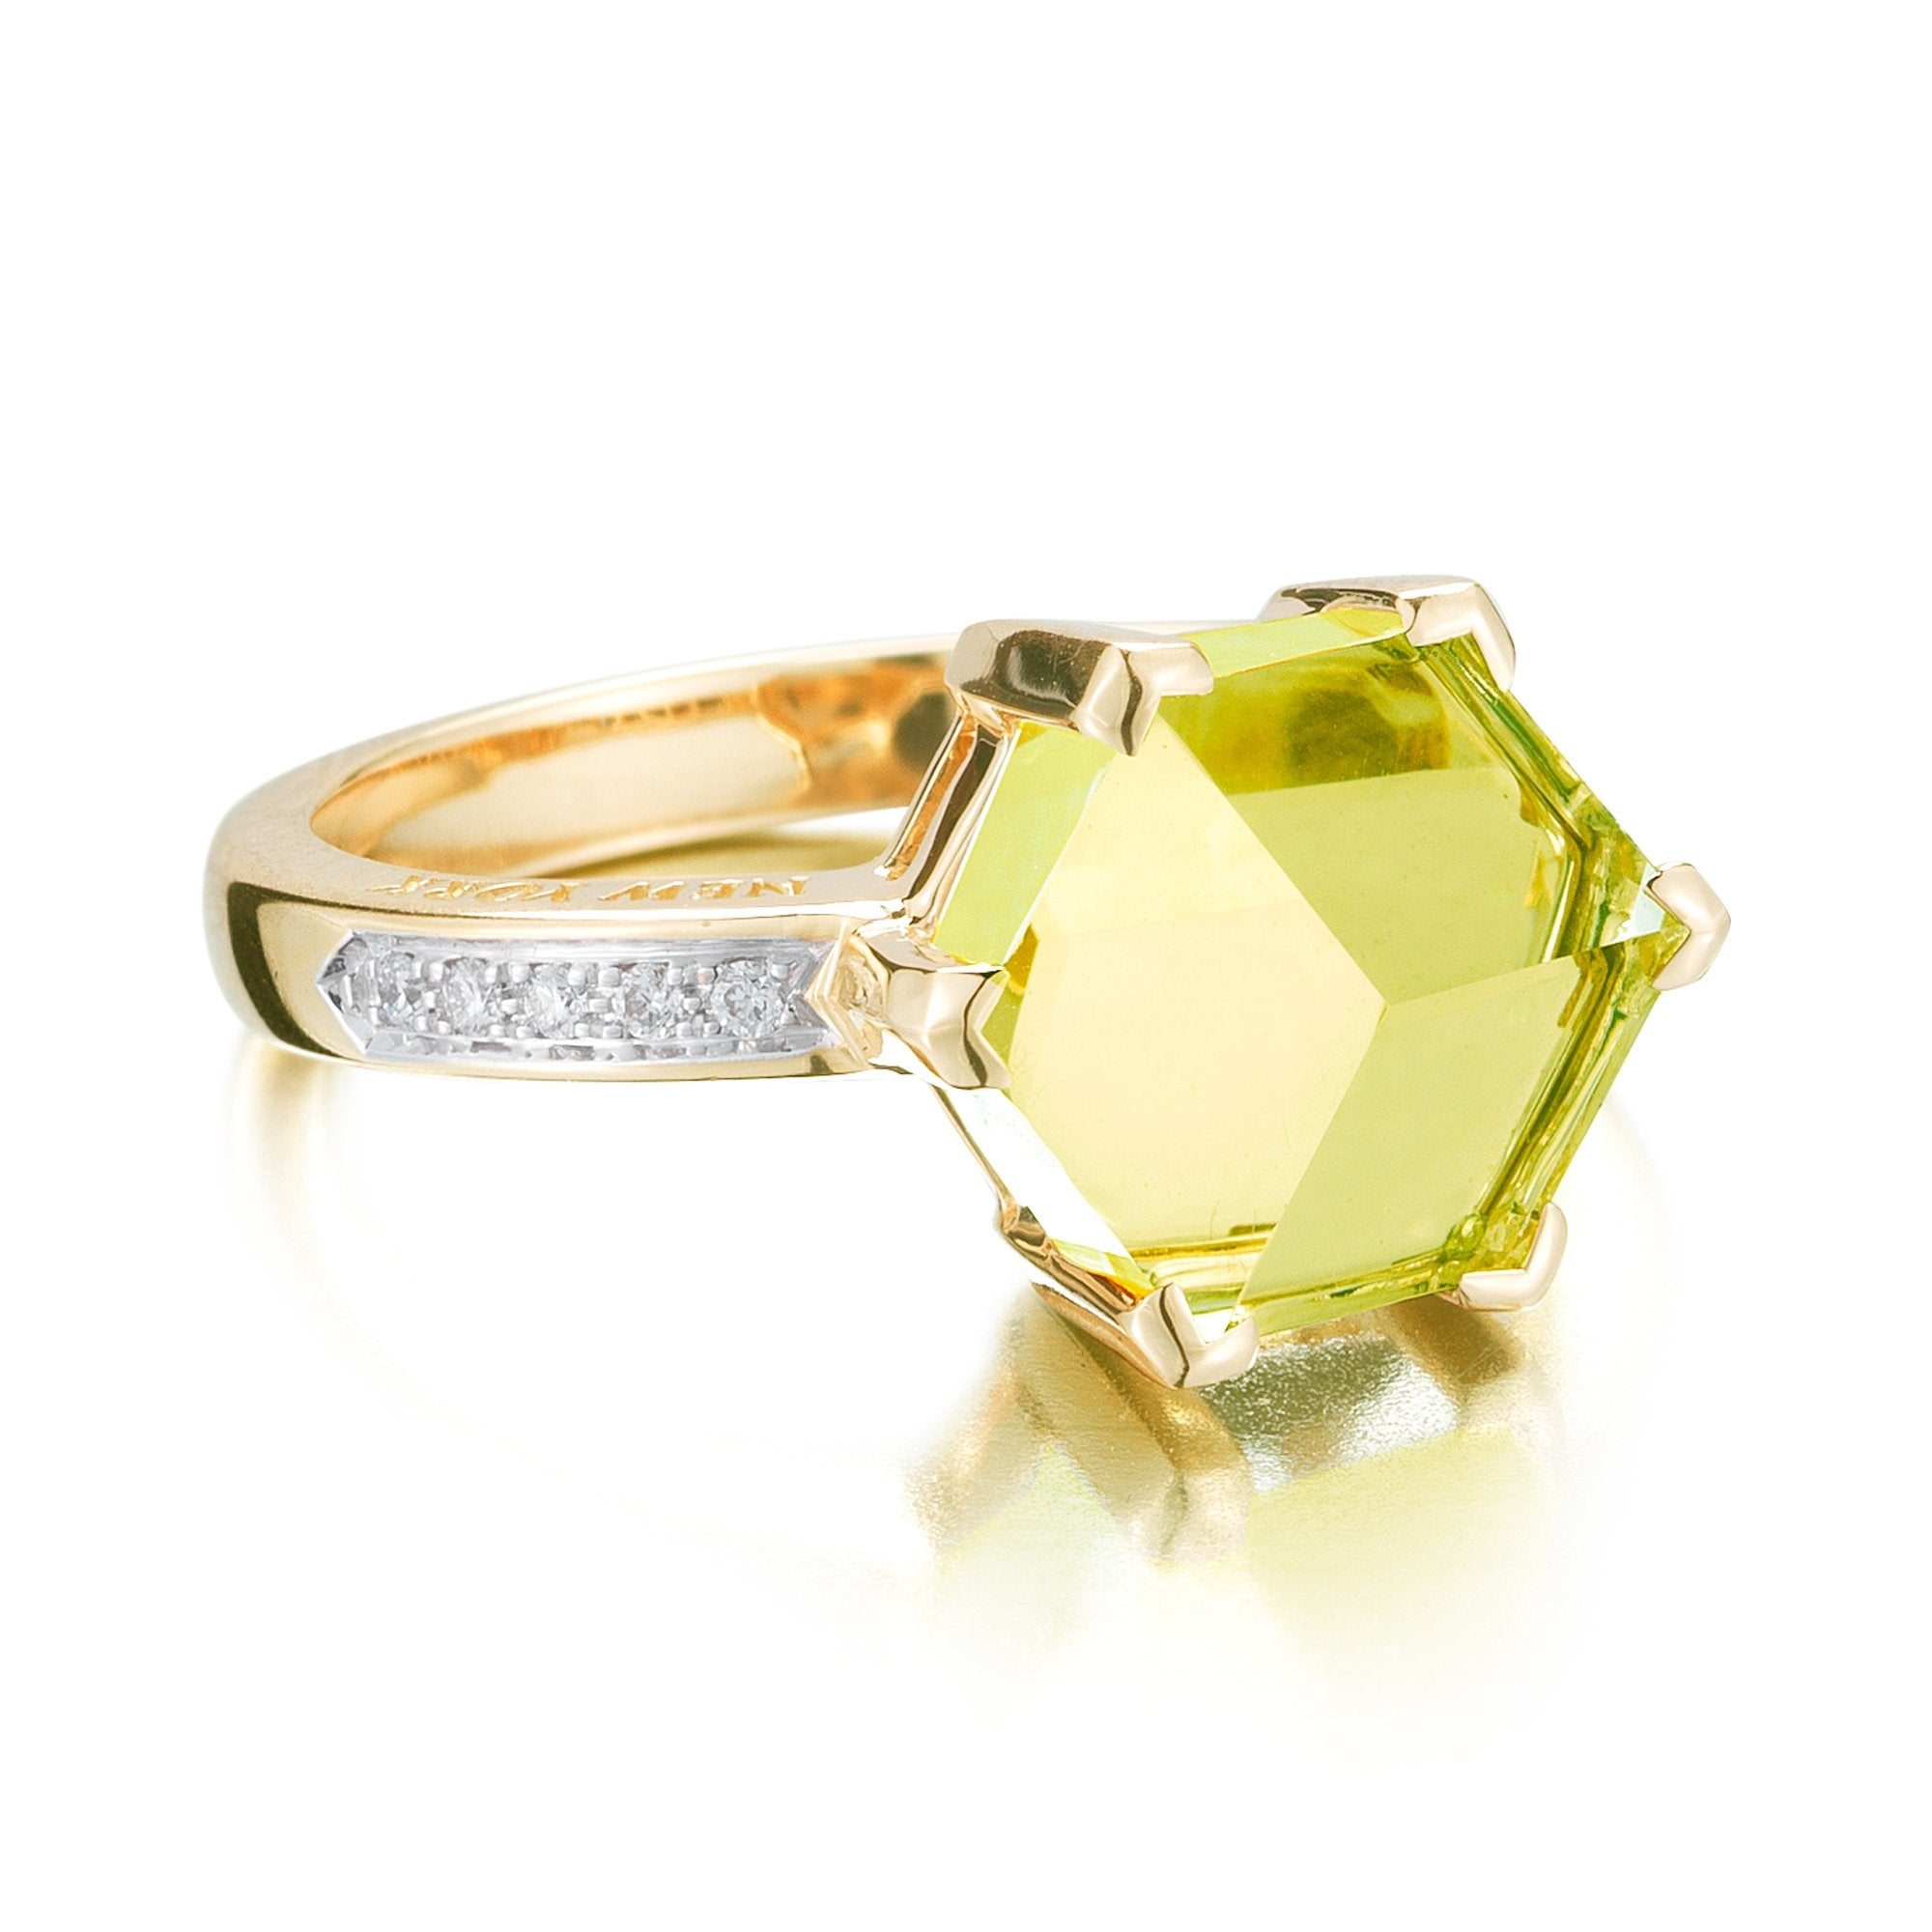 Lemon Citrine 'Brillante® Valentina' Ring, Petite - Paolo Costagli - 1